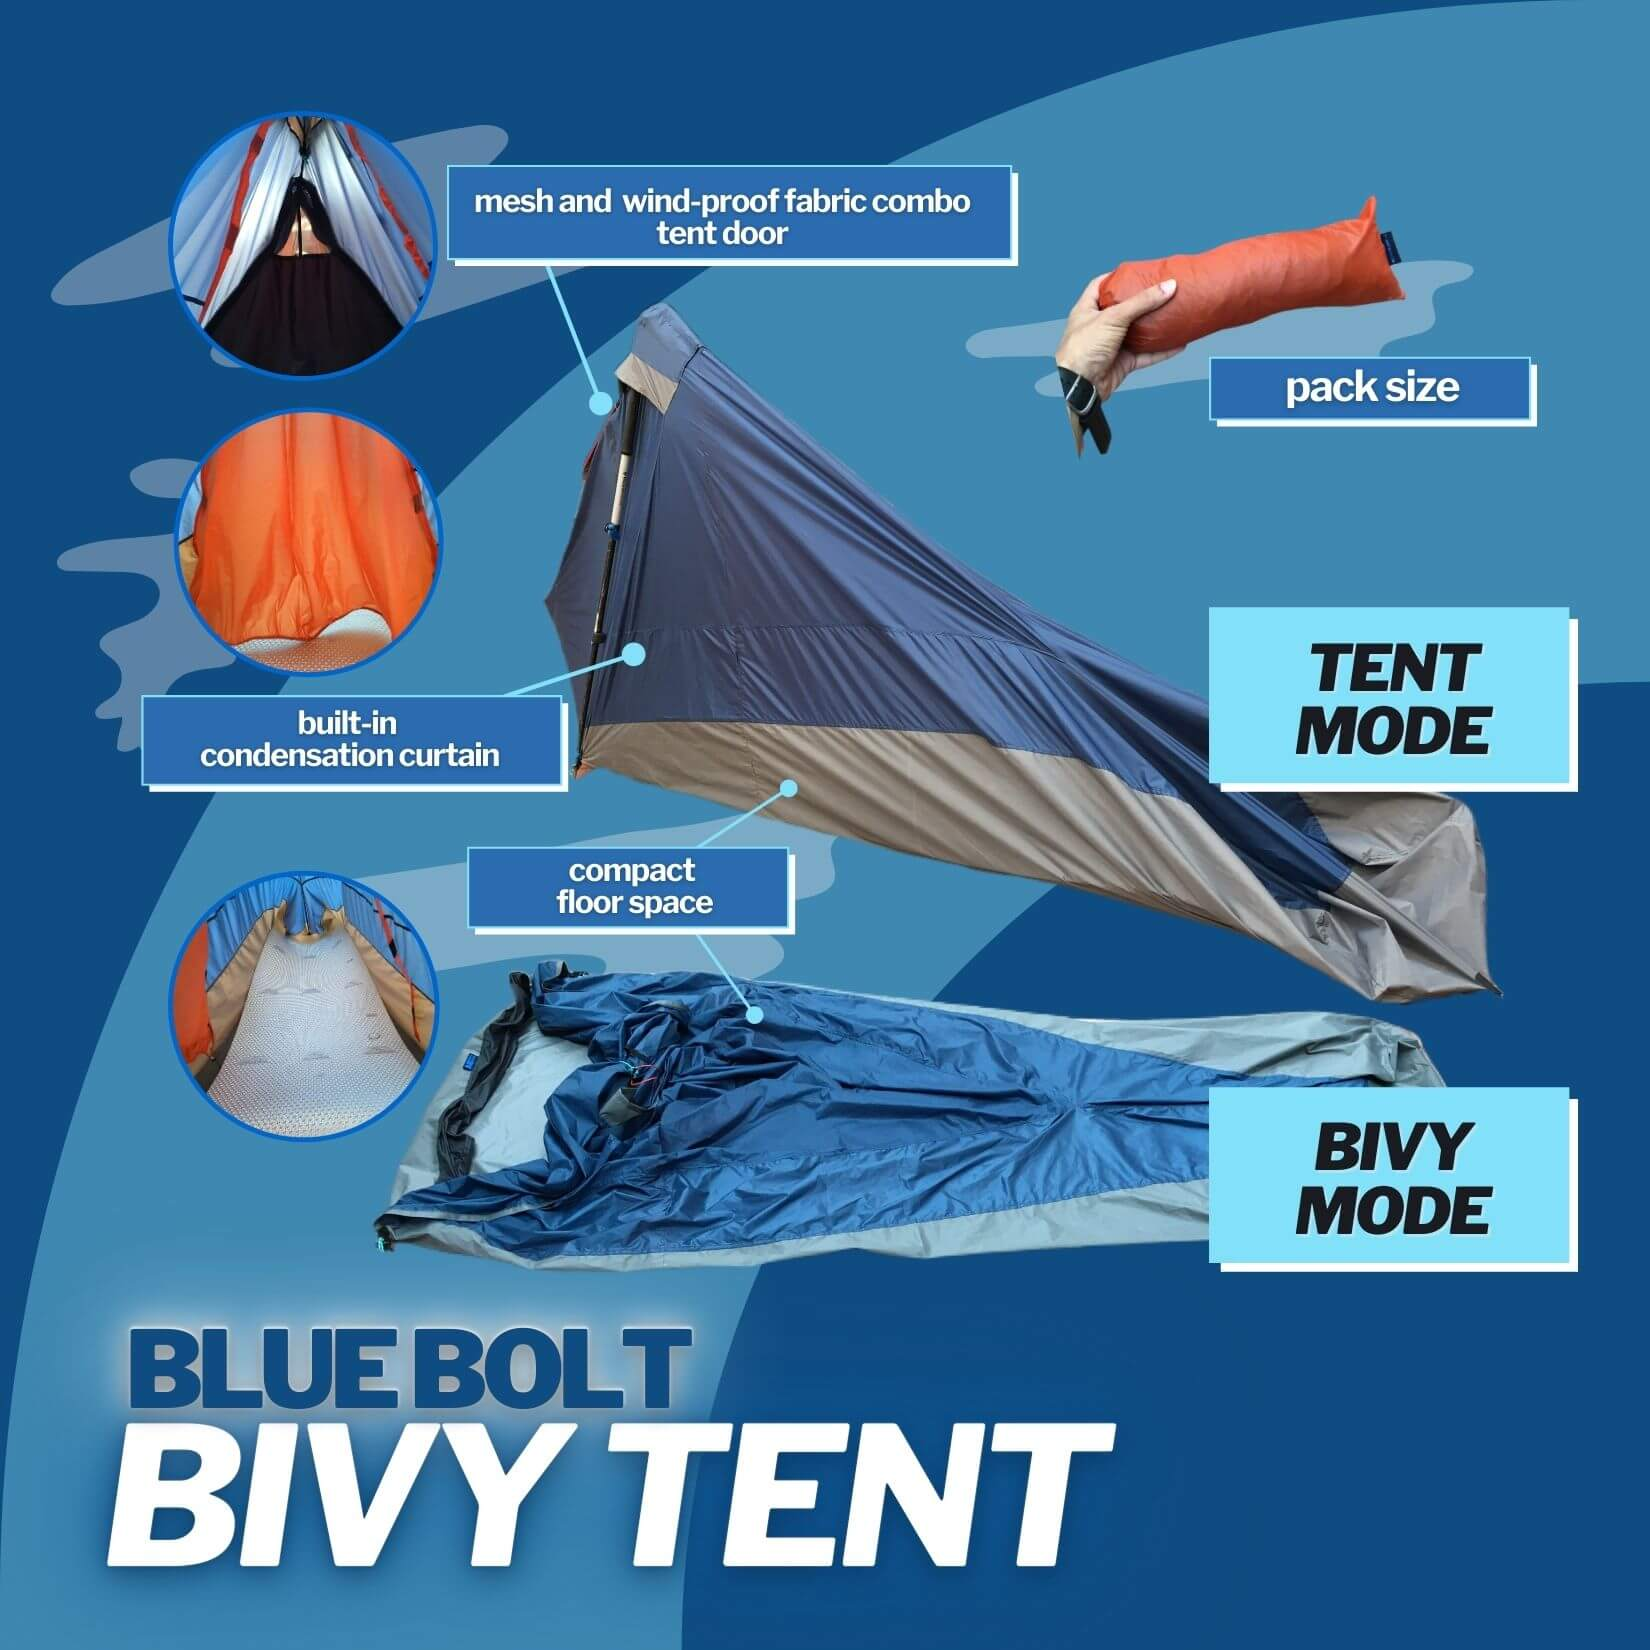 Infographic for Blue Bolt Bivy Tent